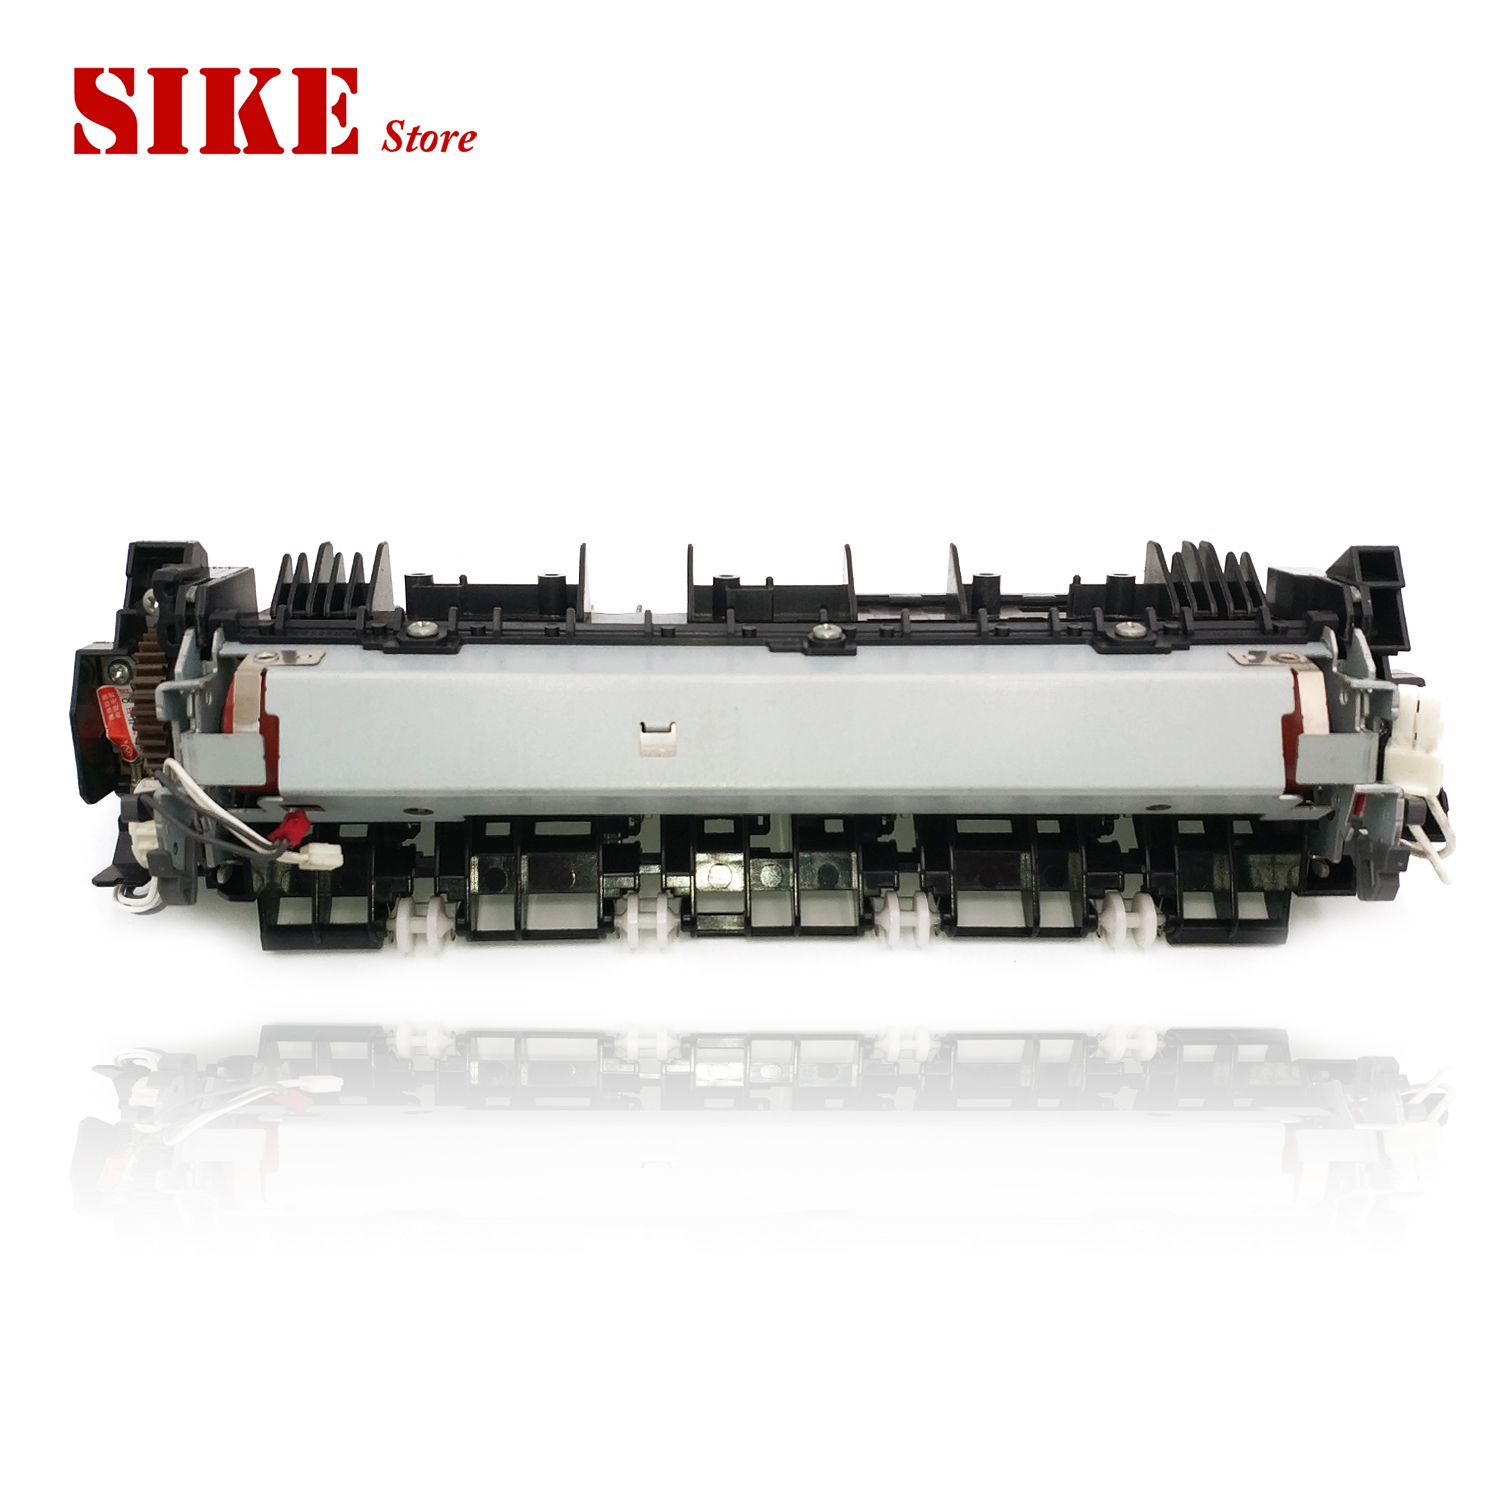 Fuser Unit Assy For Brother MFC 7320 MFC 7340 MFC 7345N 7320 7340 7345 MFC7320 MFC7340